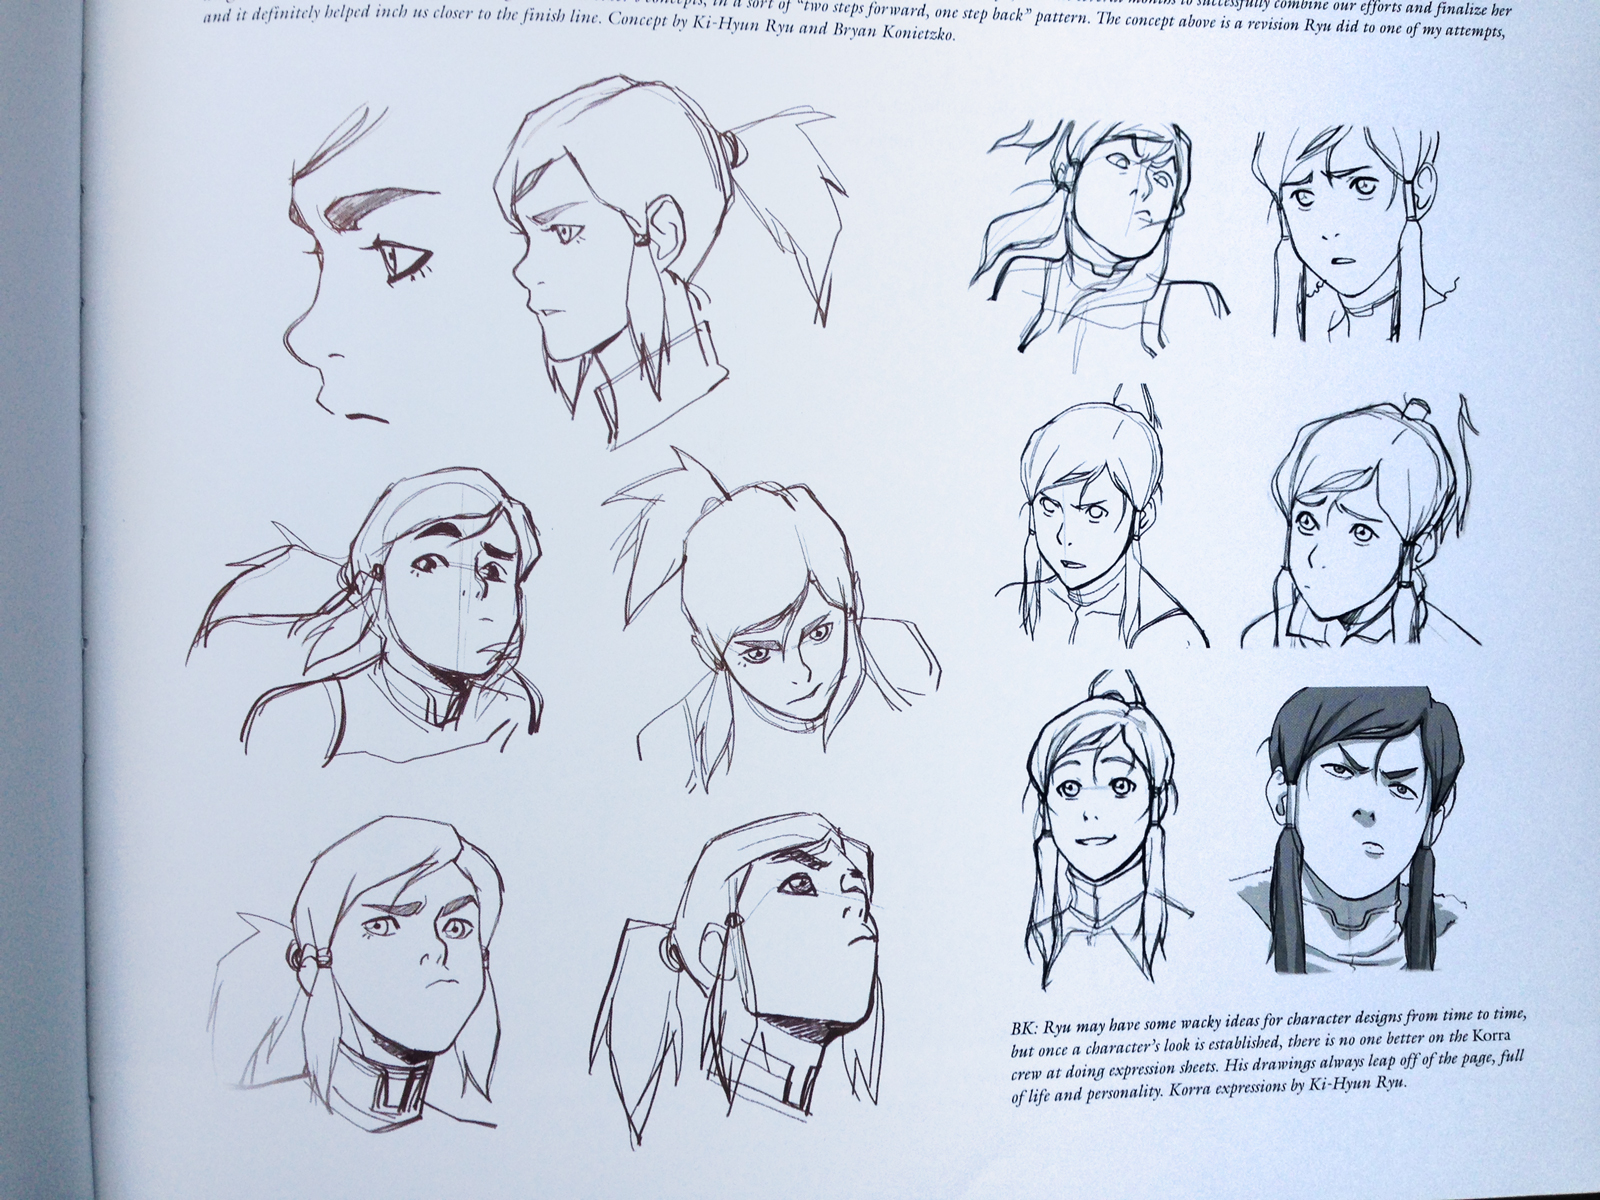 Legend-of-Korra-Korra-faces